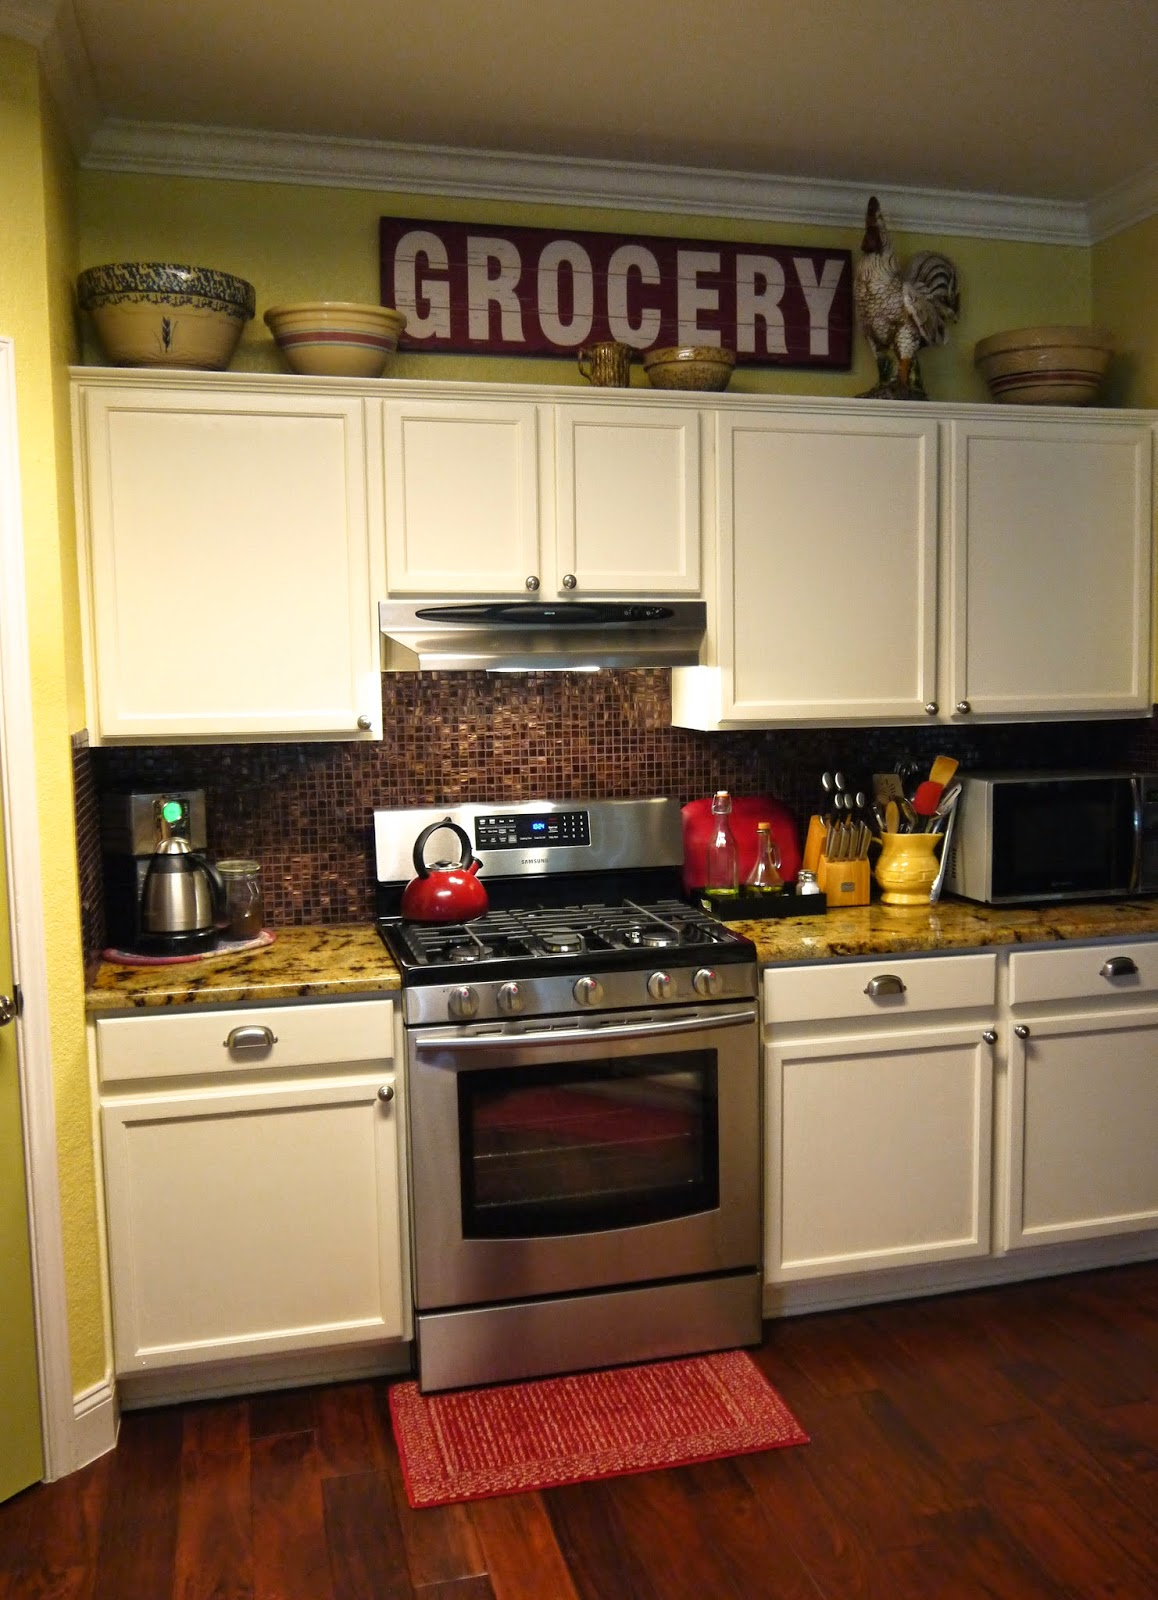 So much to dew: Mom and Dad's kitchen redo (and outside updates too!)